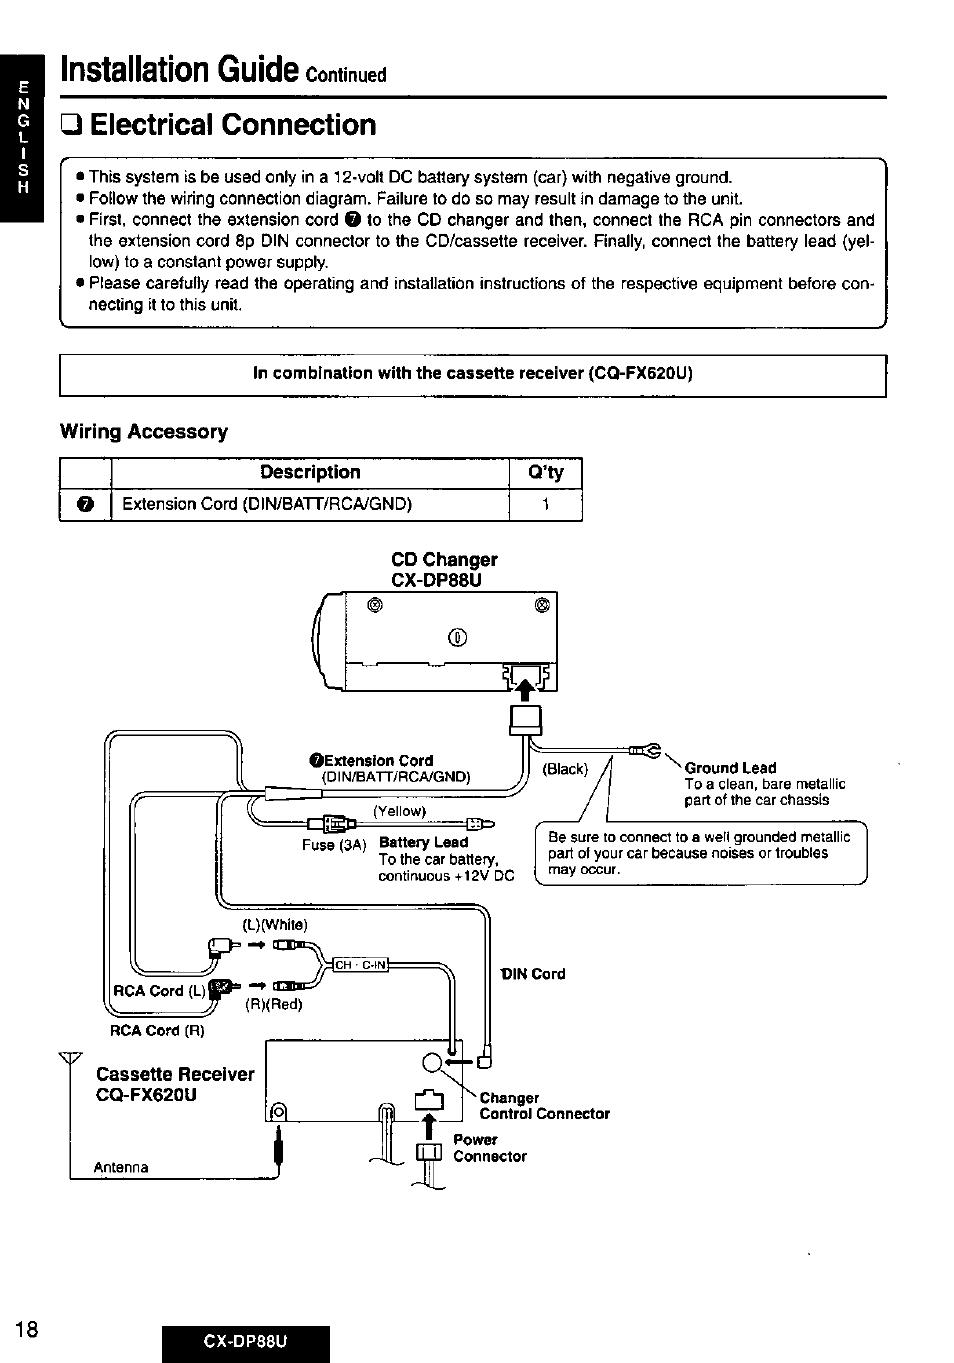 Electrical Connection Wiring Accessory Panasonic Cx Dp88u User Cd Diagram Manual Page 18 48